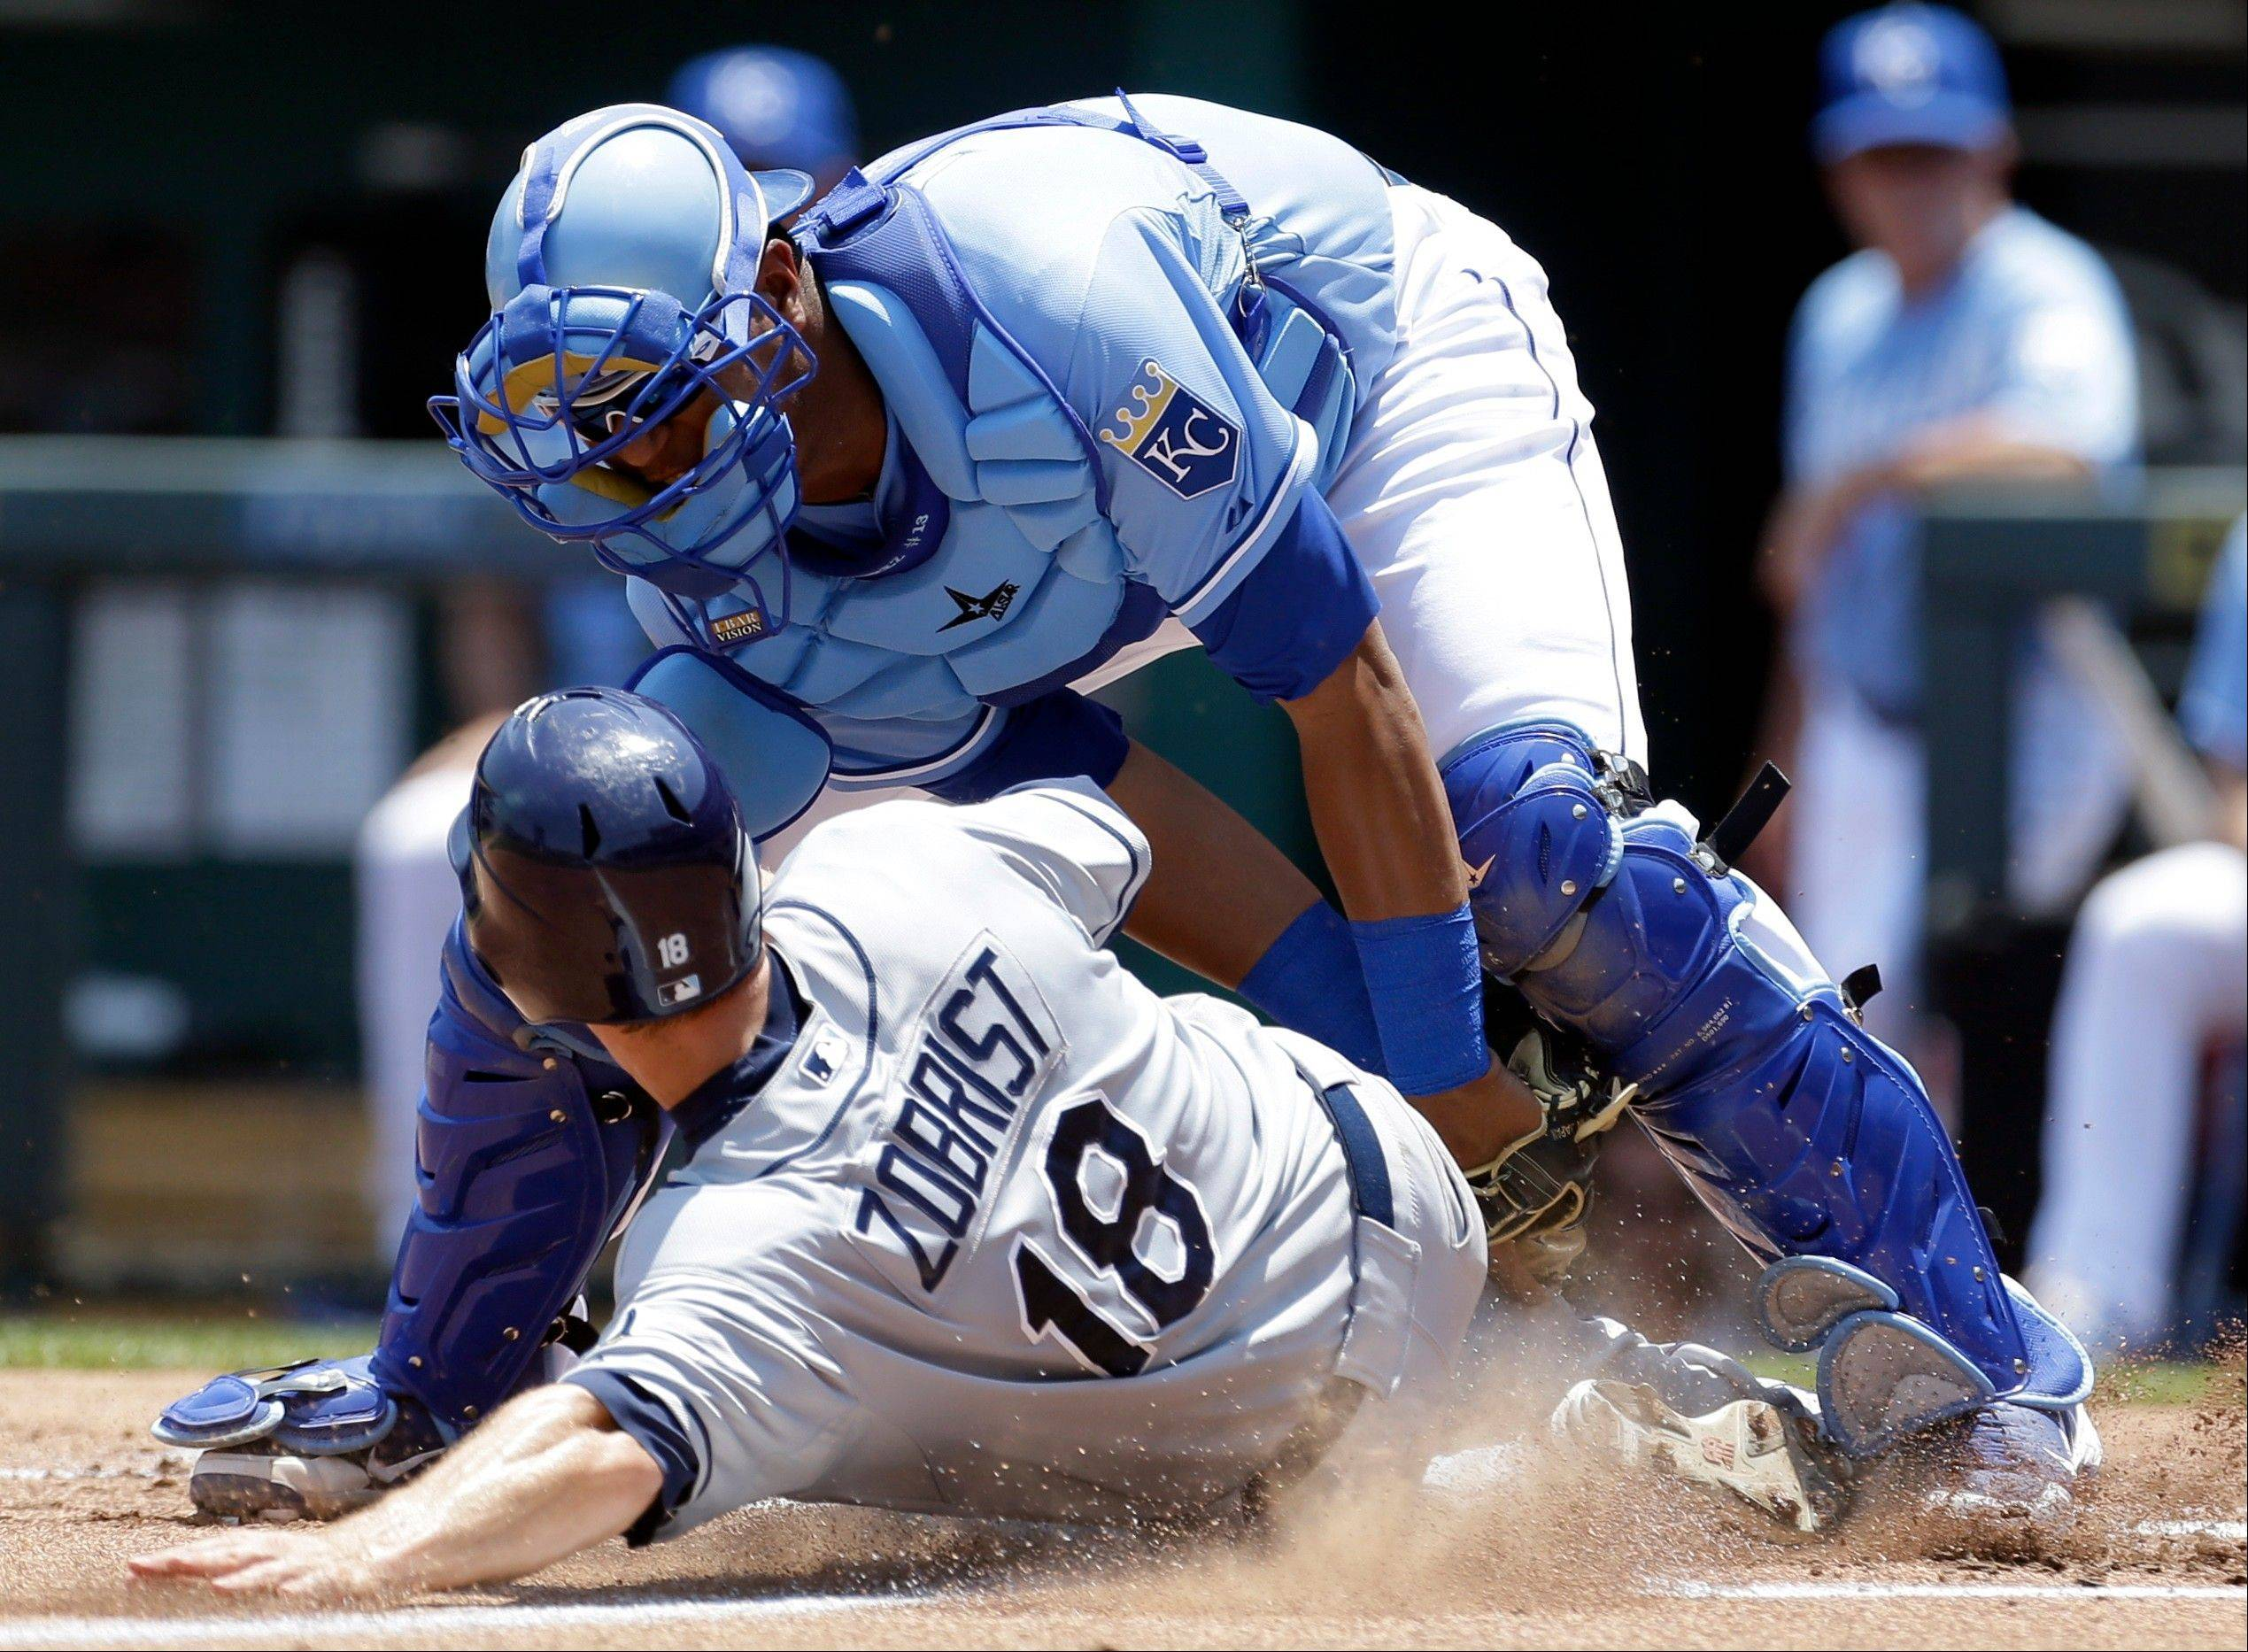 The Tampa Bay Rays' Ben Zobrist, bottom, is tagged out by Kansas City Royals catcher Salvador Perez while trying to score Wednesday during the second inning in Kansas City, Mo.